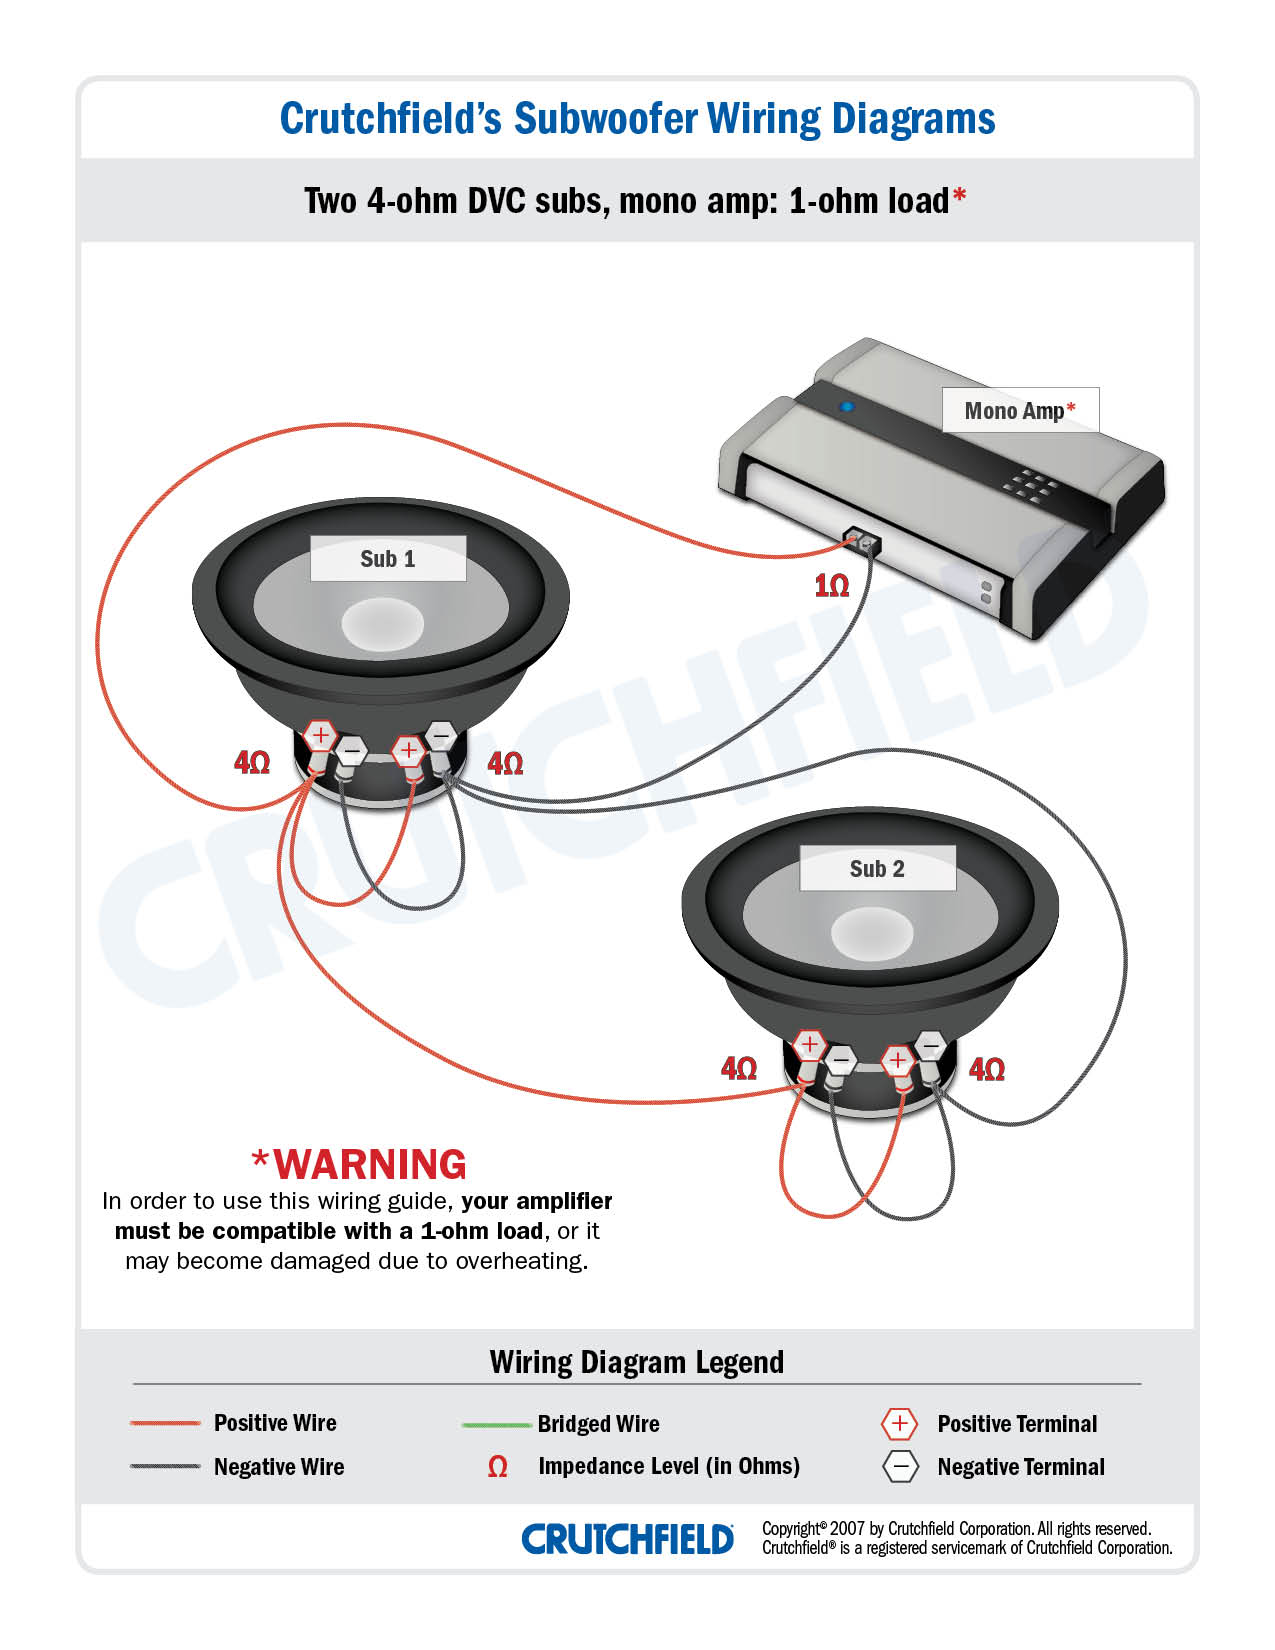 2 DVC 4 ohm mono low imp how to determine the best wire gauge subwoofer wiring at alyssarenee.co